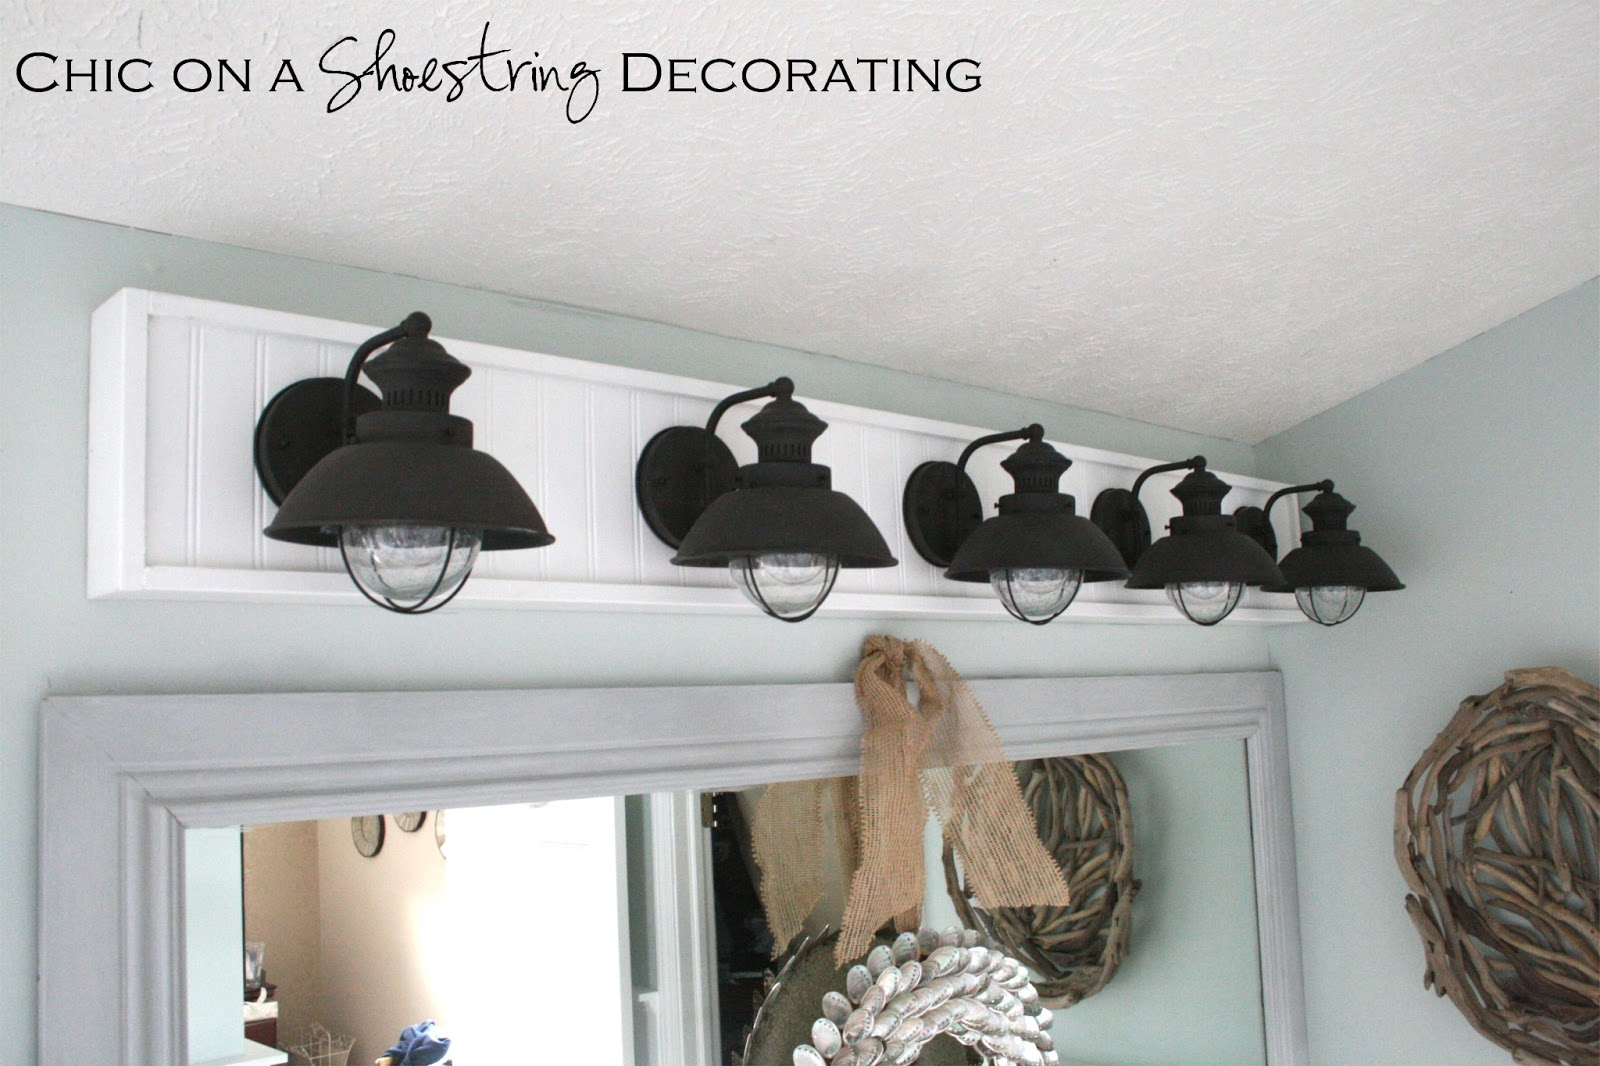 Attractive DIY Bathroom Light Fixture By Chic On A Shoestring Decorating